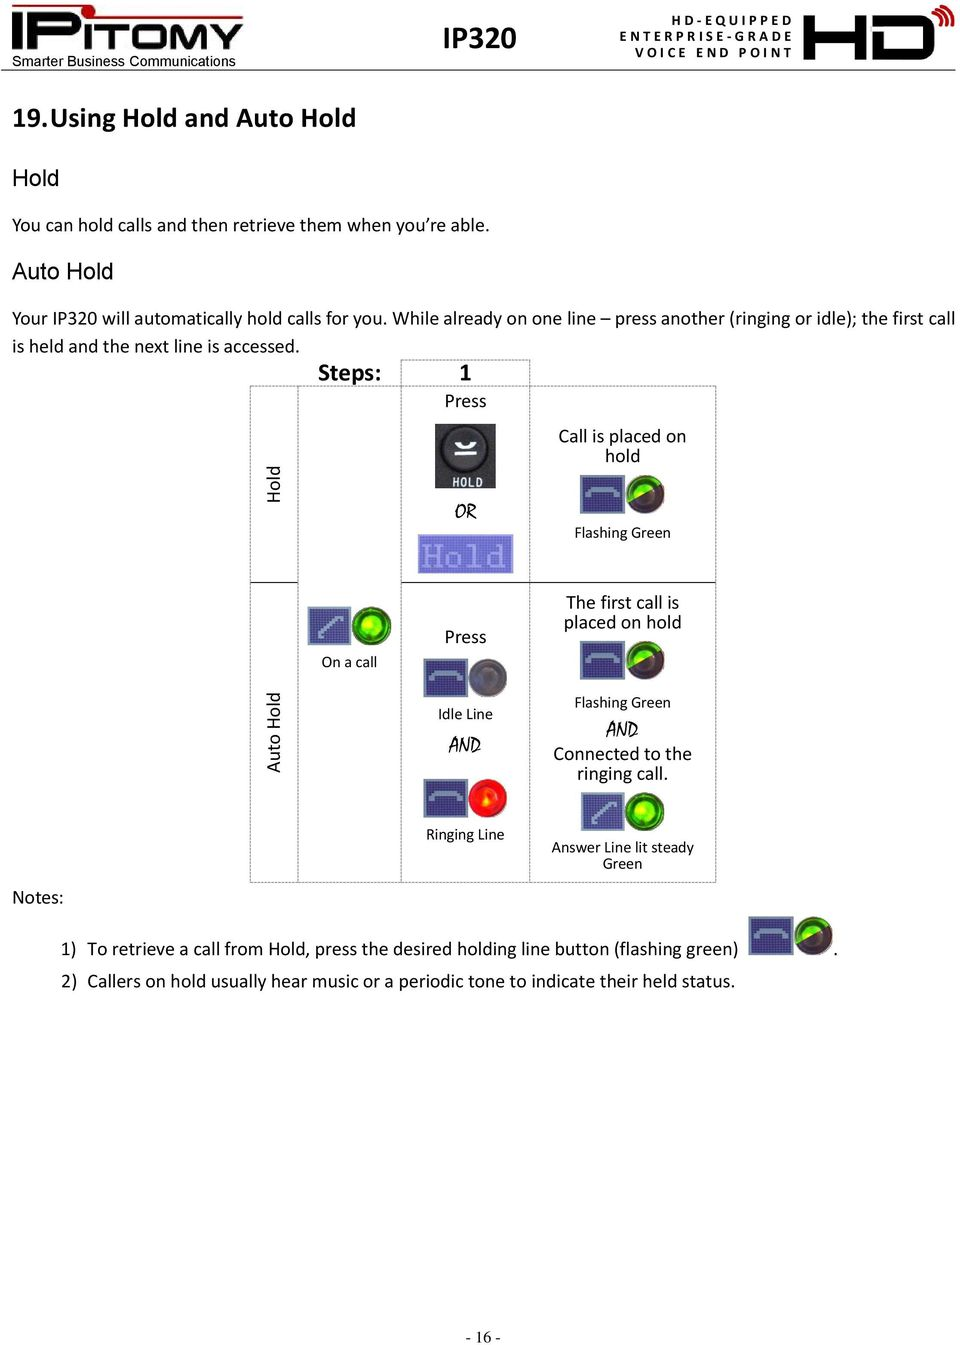 Steps: 1 Call is placed on hold OR Flashing Green On a call The first call is placed on hold Idle Line AND Flashing Green AND Connected to the ringing call.